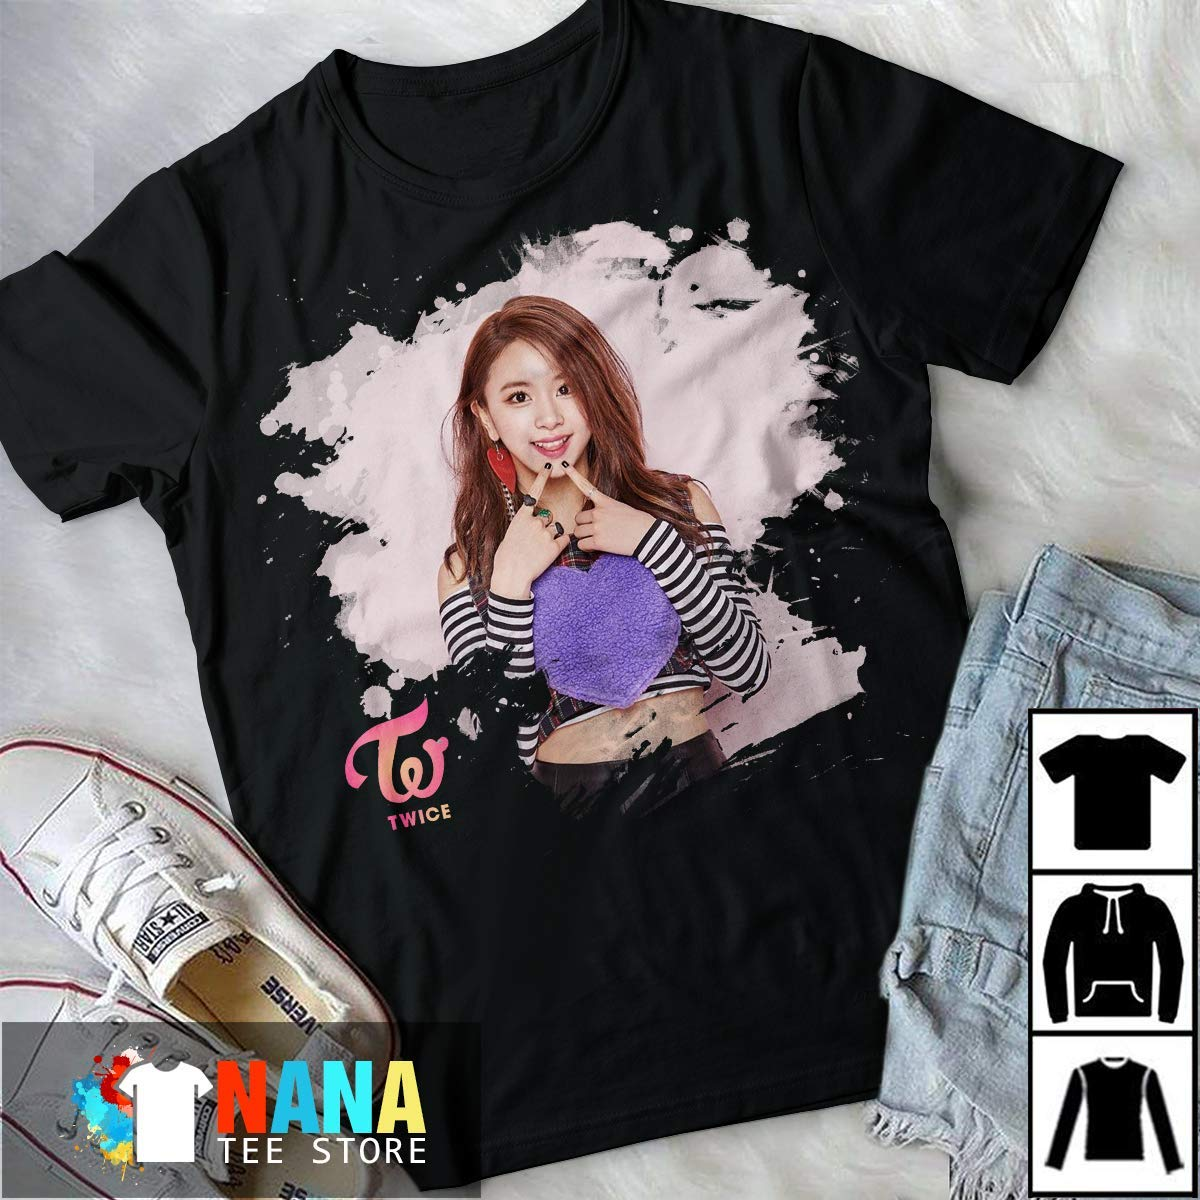 Amazon com: Kpop Twice Chaeyoung T-Shirt Long T-Shirt